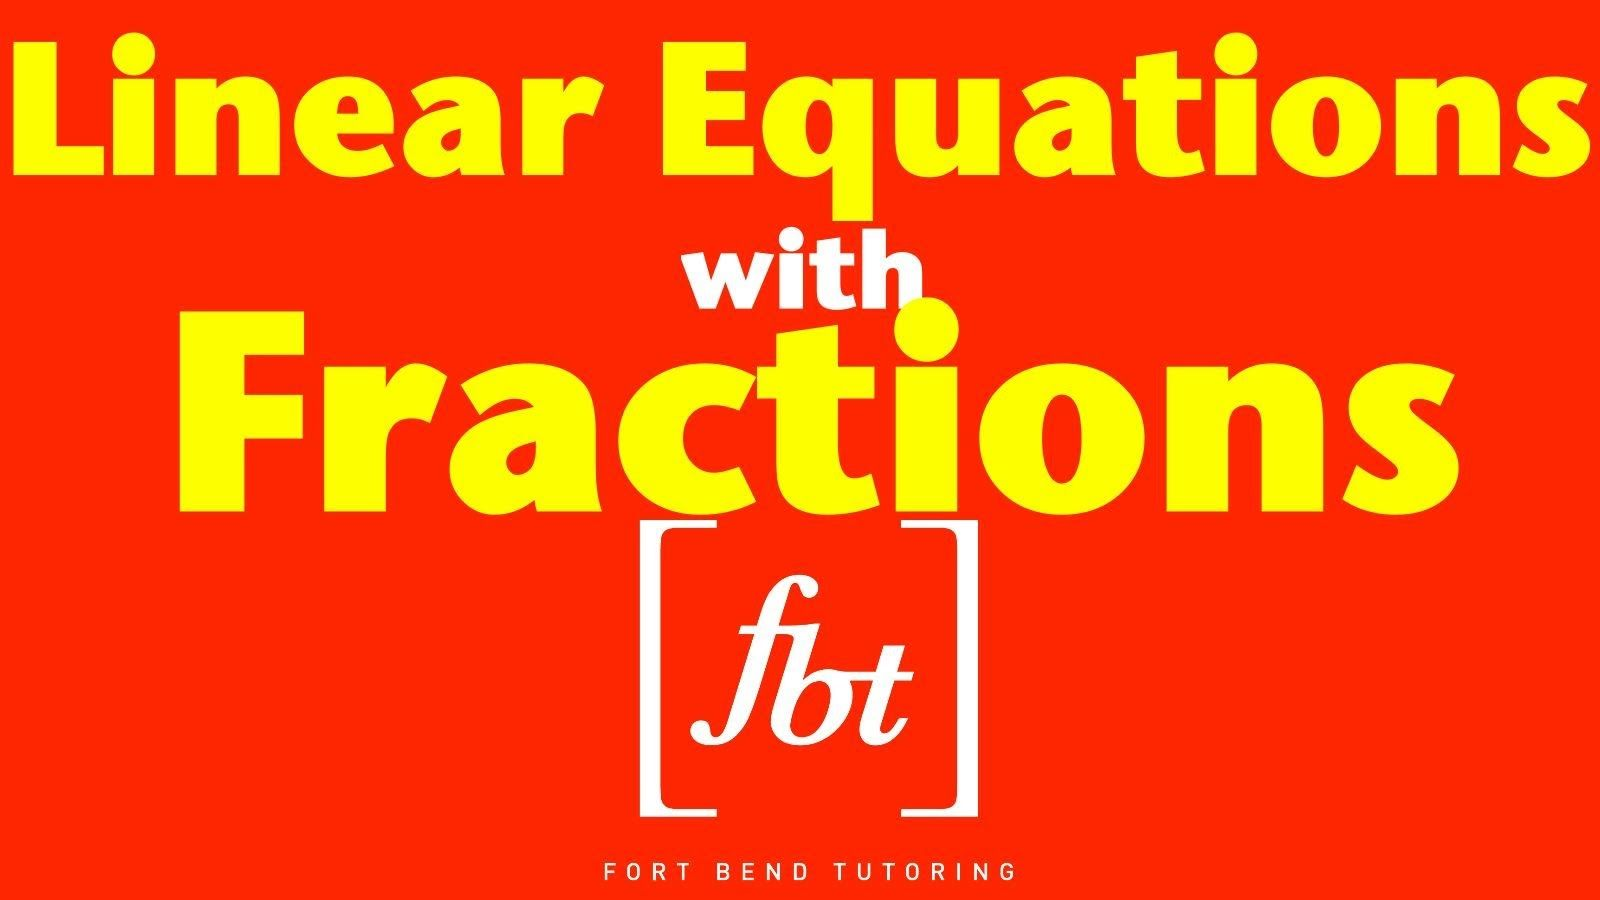 Solving Linear Equations With Fractions Fbt